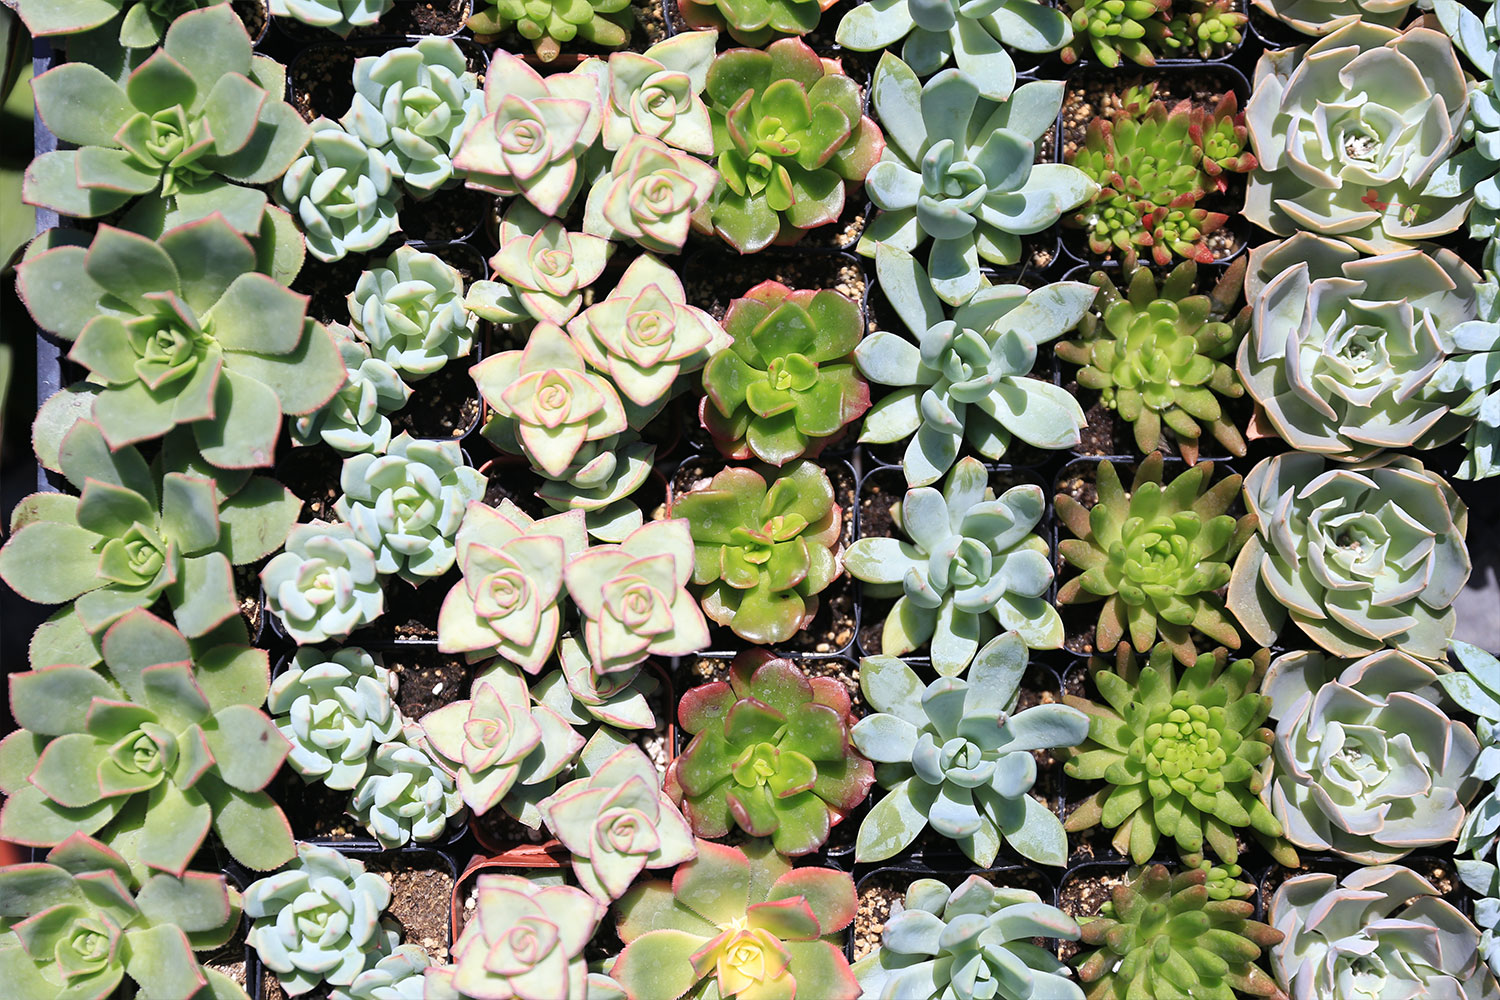 Variety of succulents